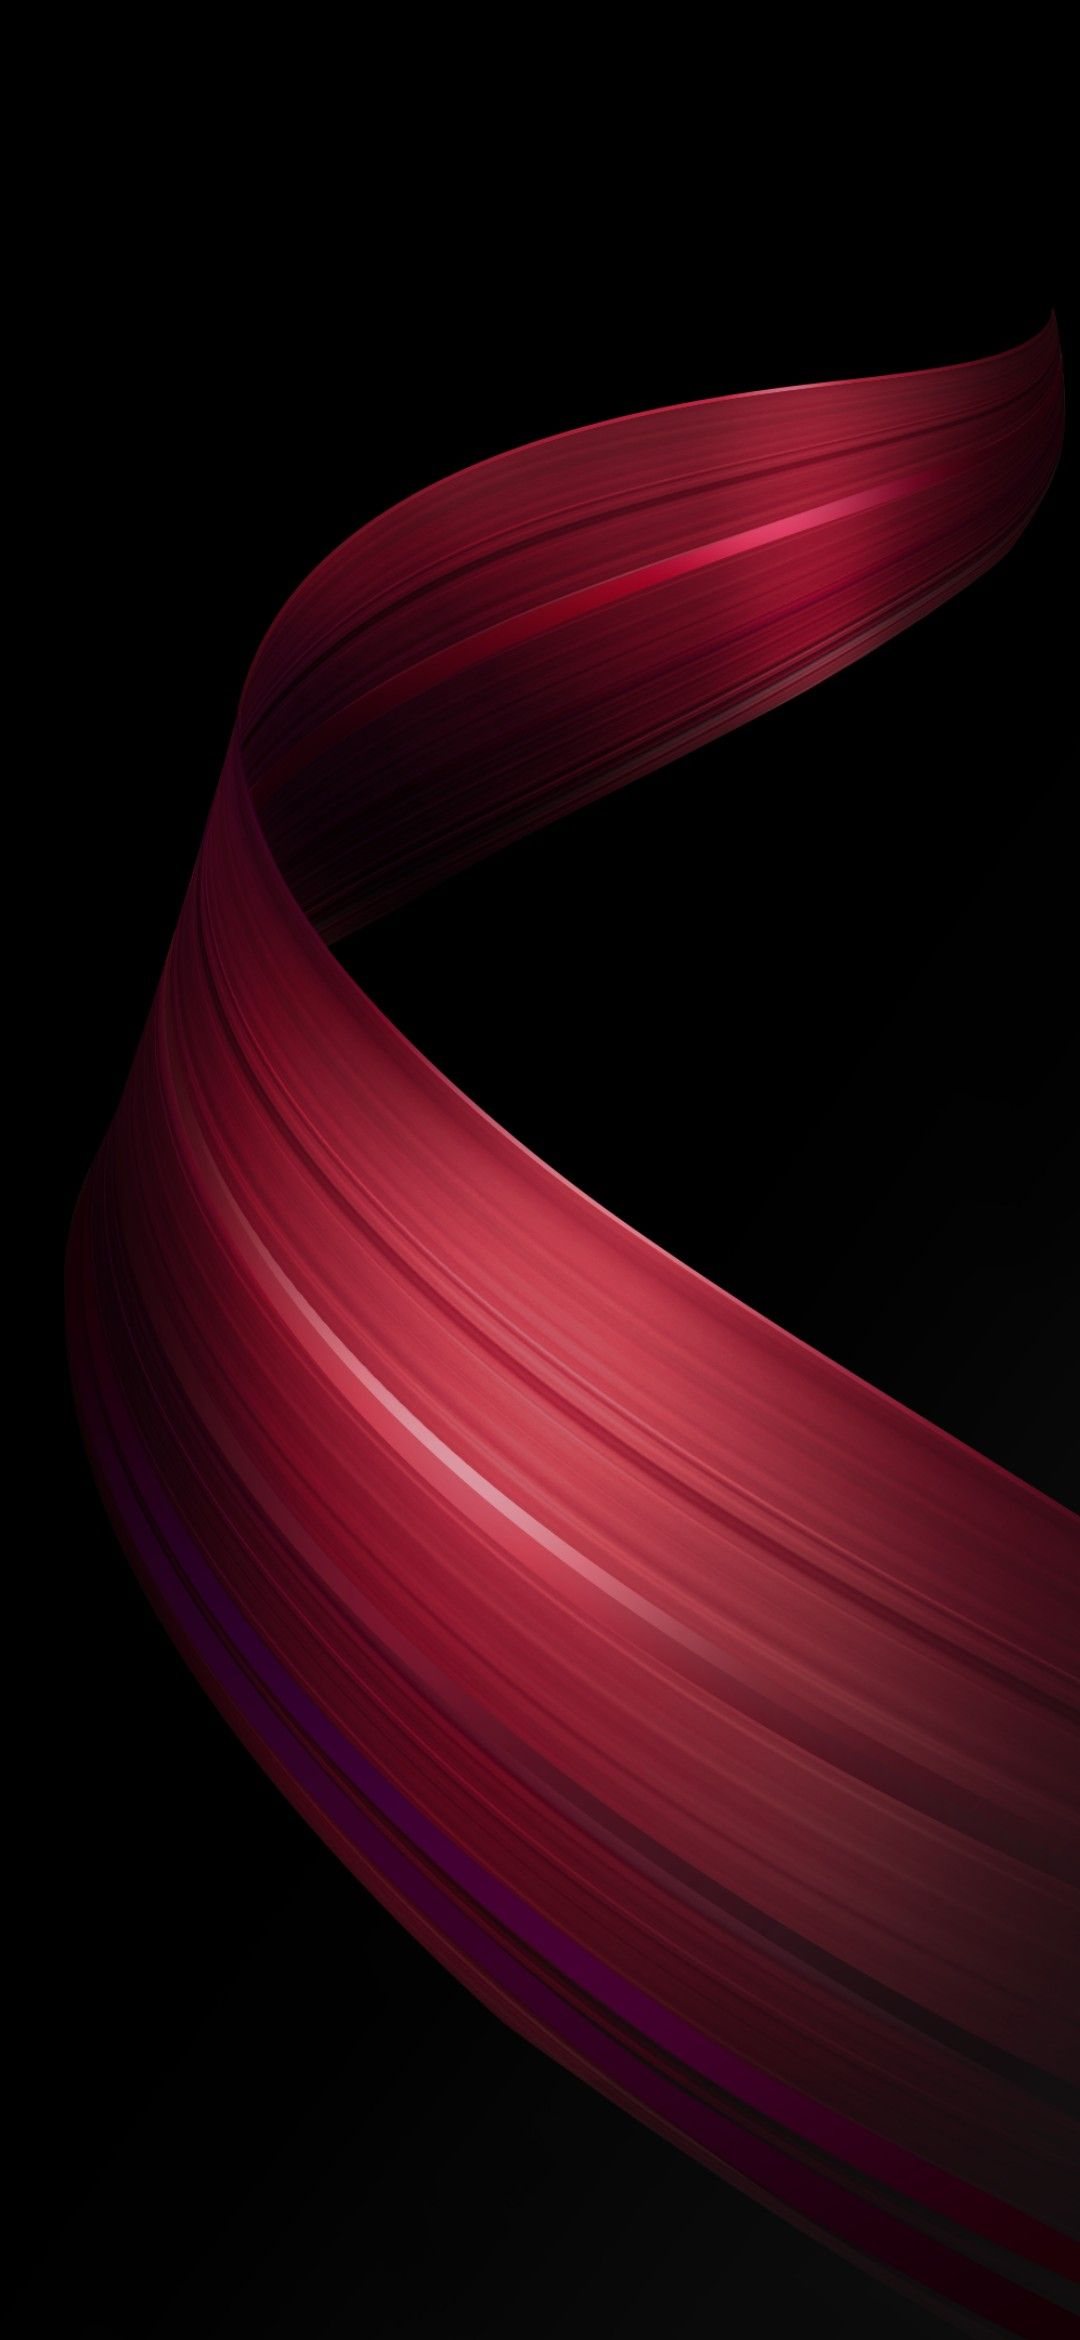 Oppo F9 Pro Wallpaper 4k Best Of Wallpapers For Andriod And Ios